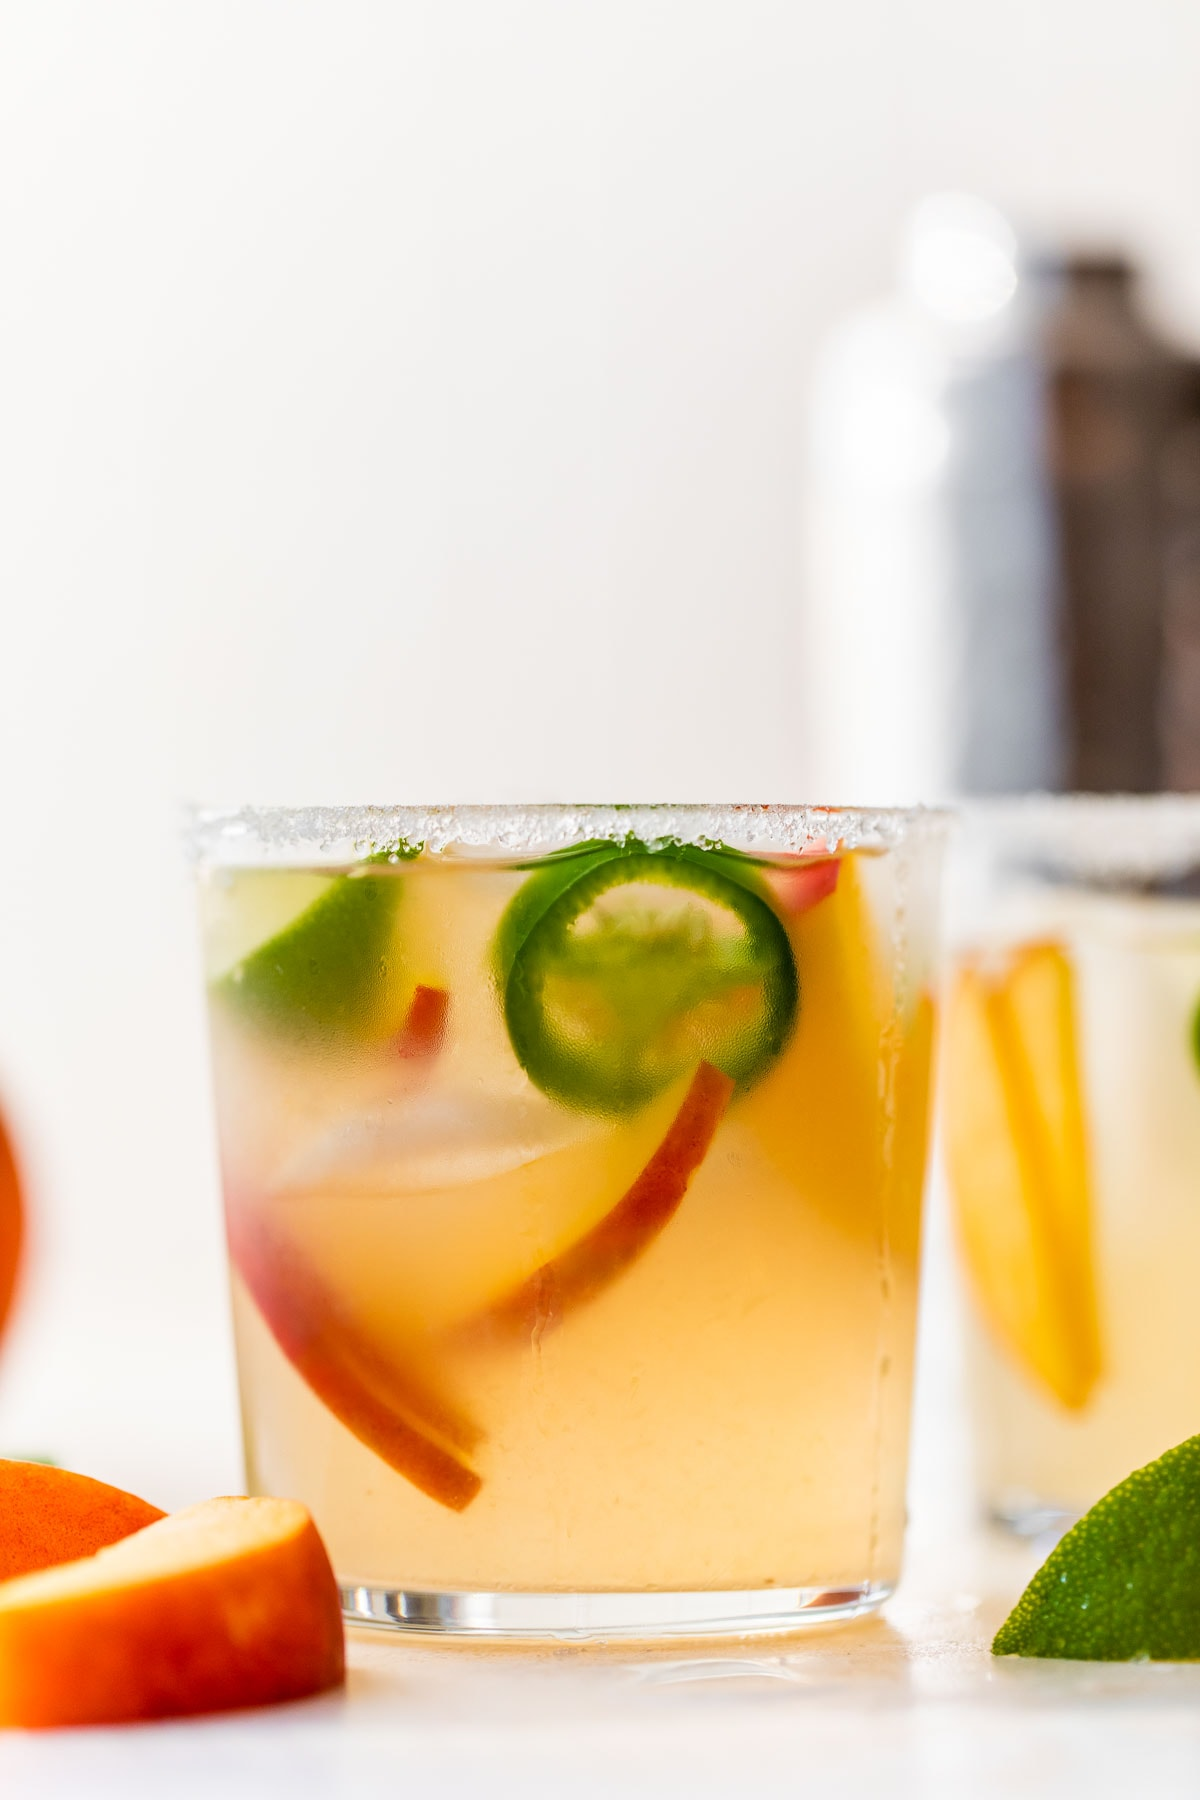 Peach Jalapeno Margaritas-Sweet, spicy, and dangerous